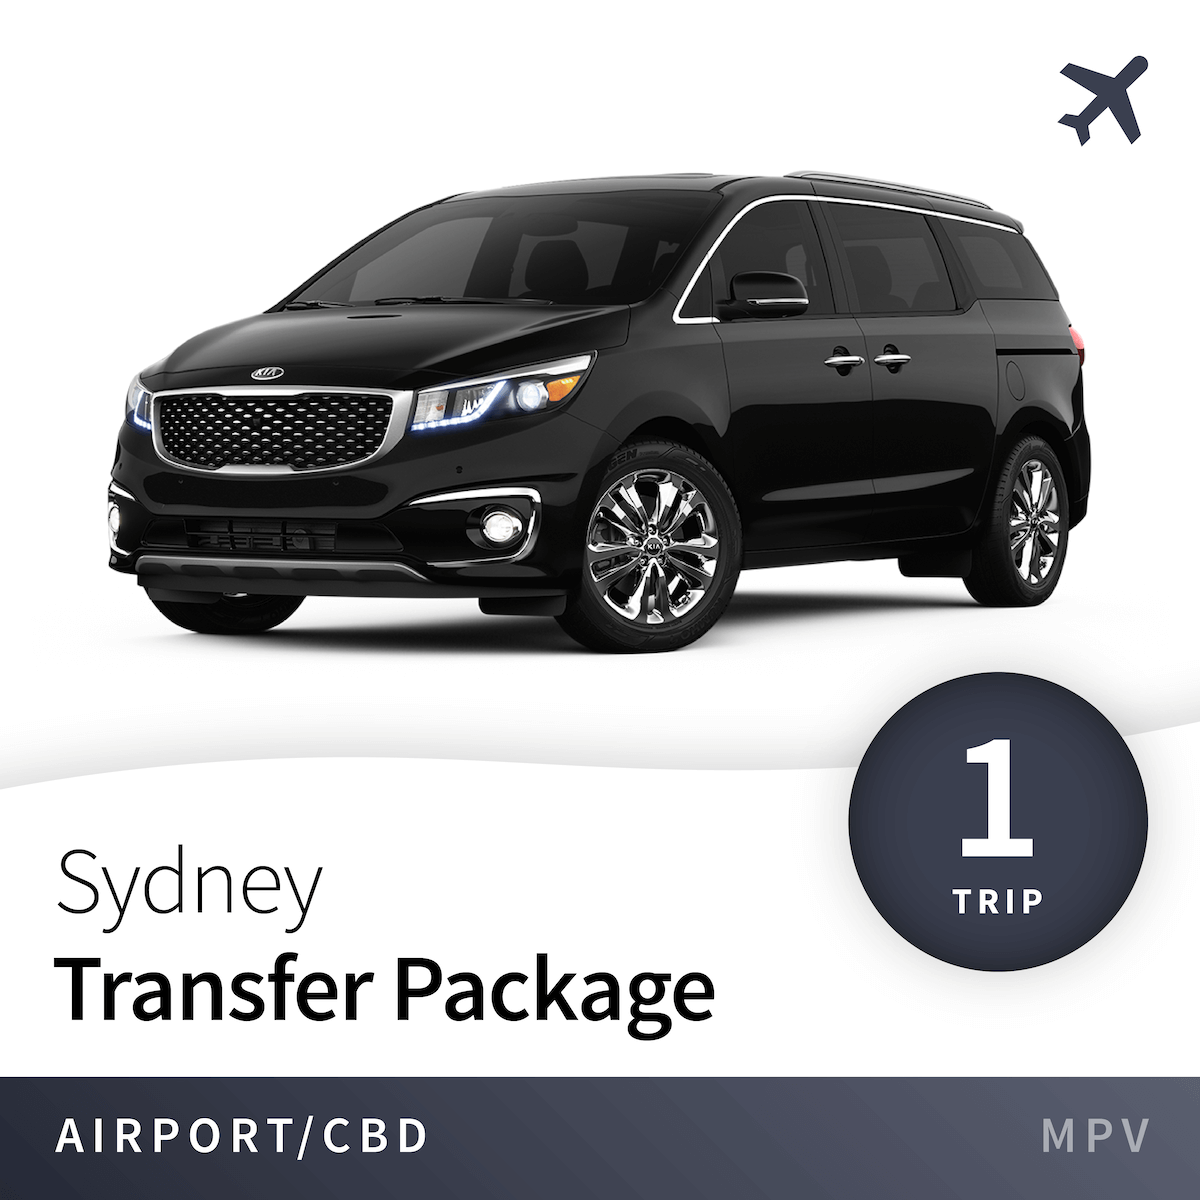 Sydney Airport Transfer Package - MPV (1 Trip) 1